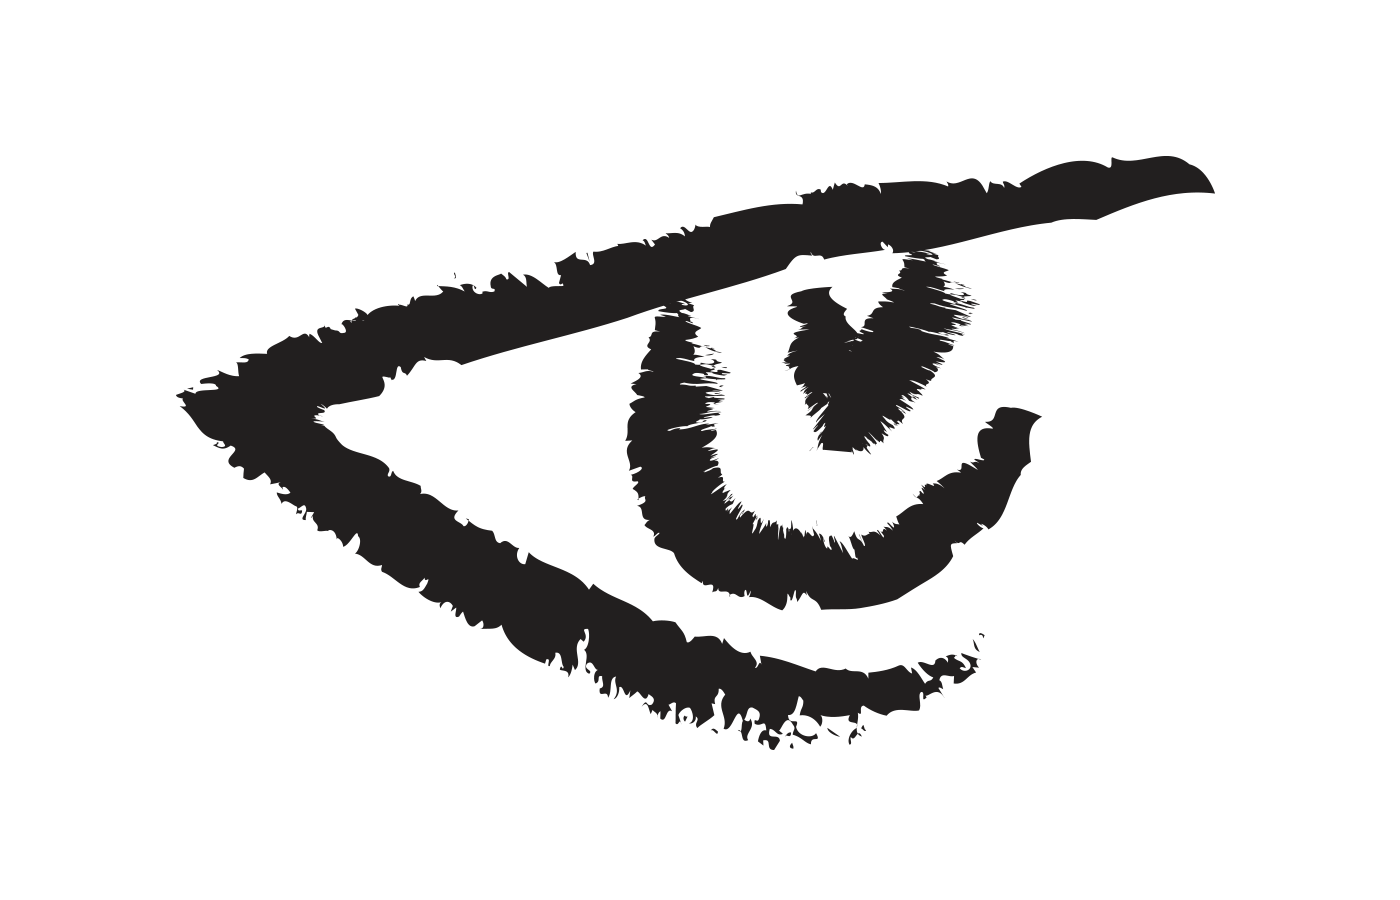 The observer symbol is a stylized profile view of an eye.